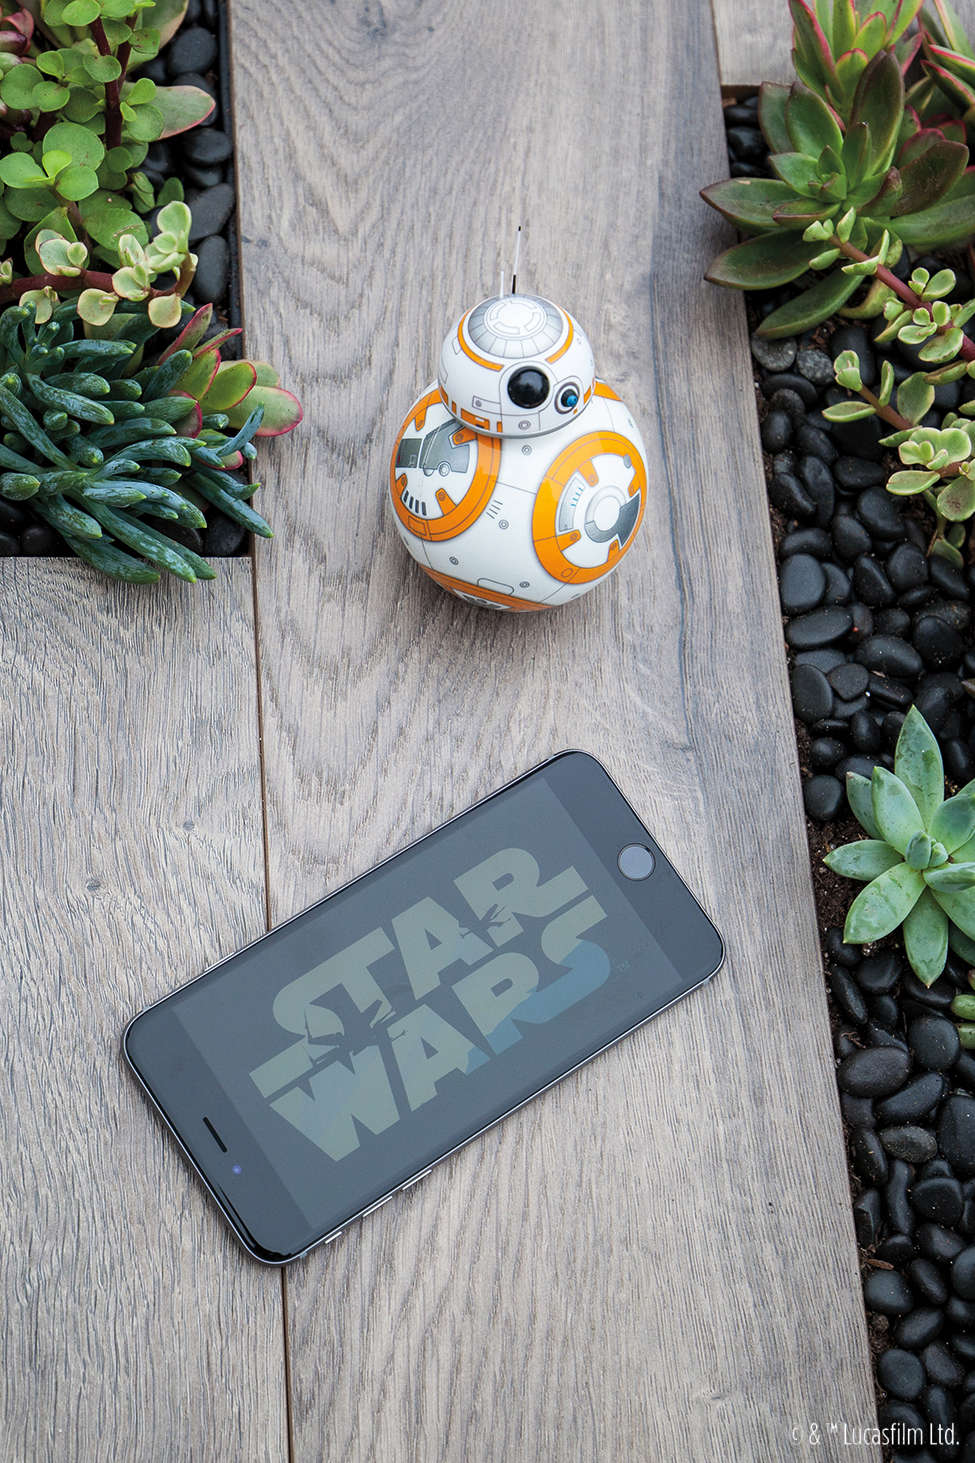 BB-8 App Enabled Droid by Sphero - one of the HOTTEST toys this season!